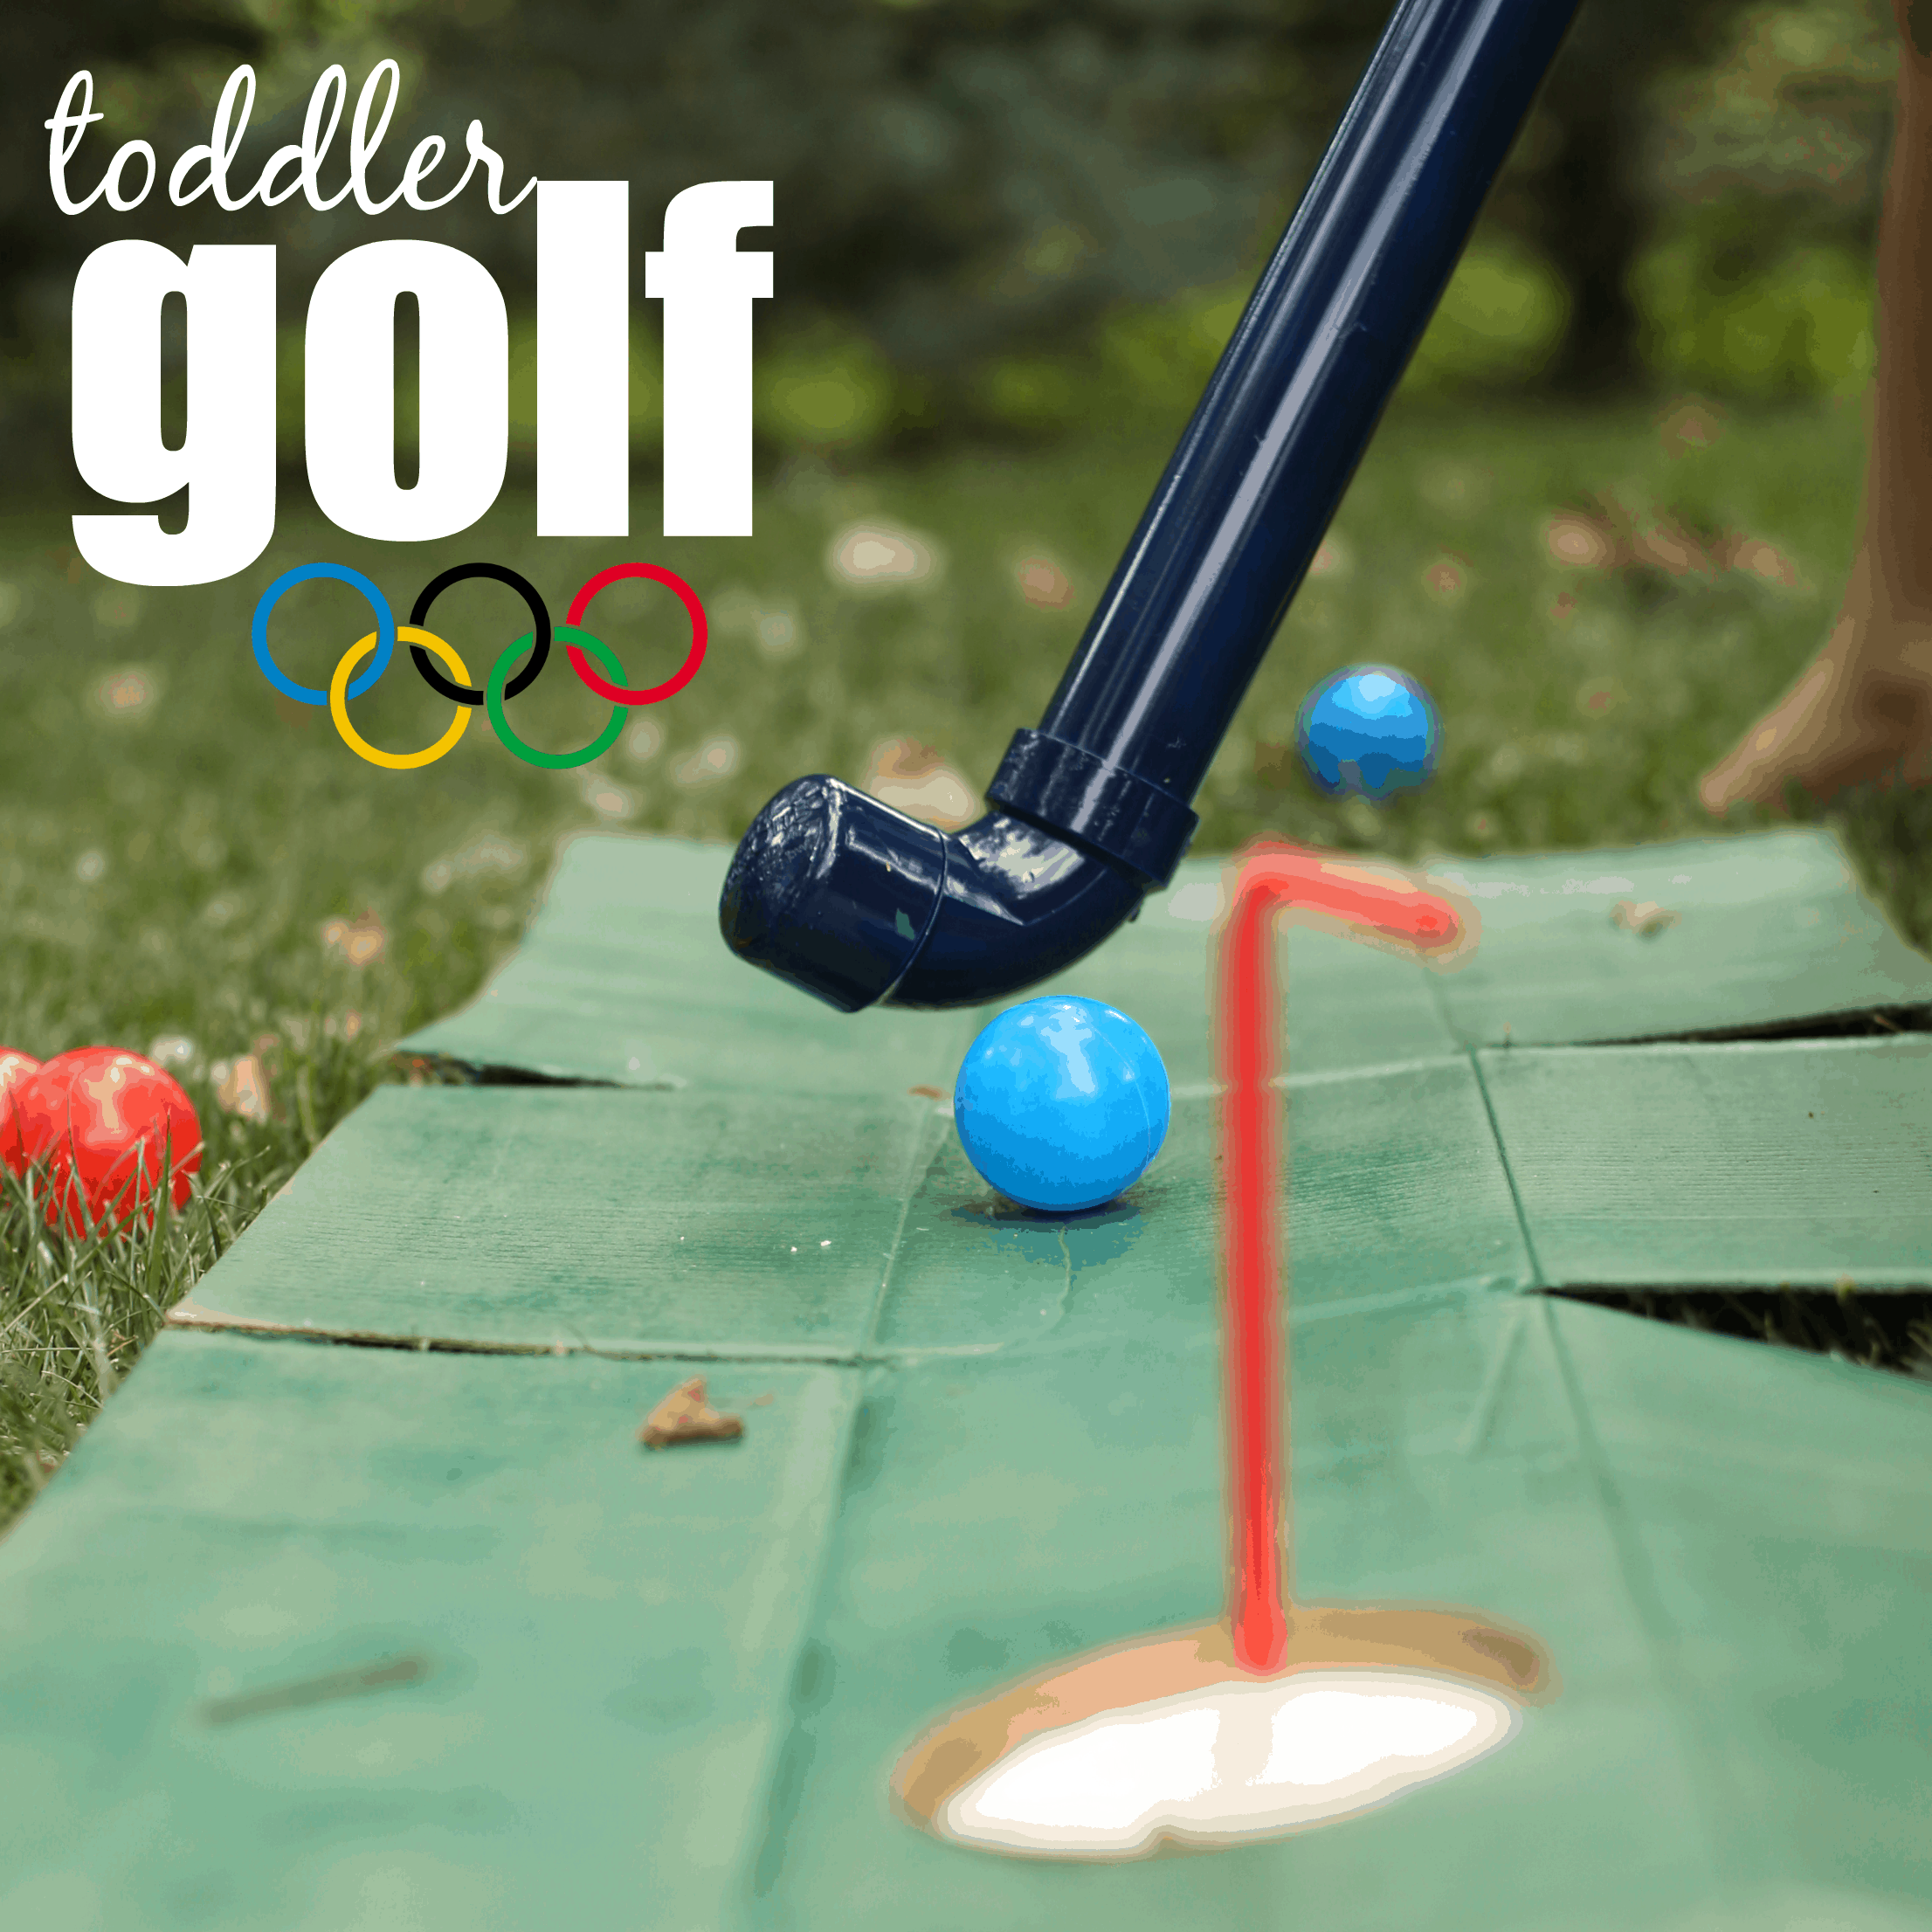 Diy Toddler Golf Clubs And Putting Green I Can Teach My